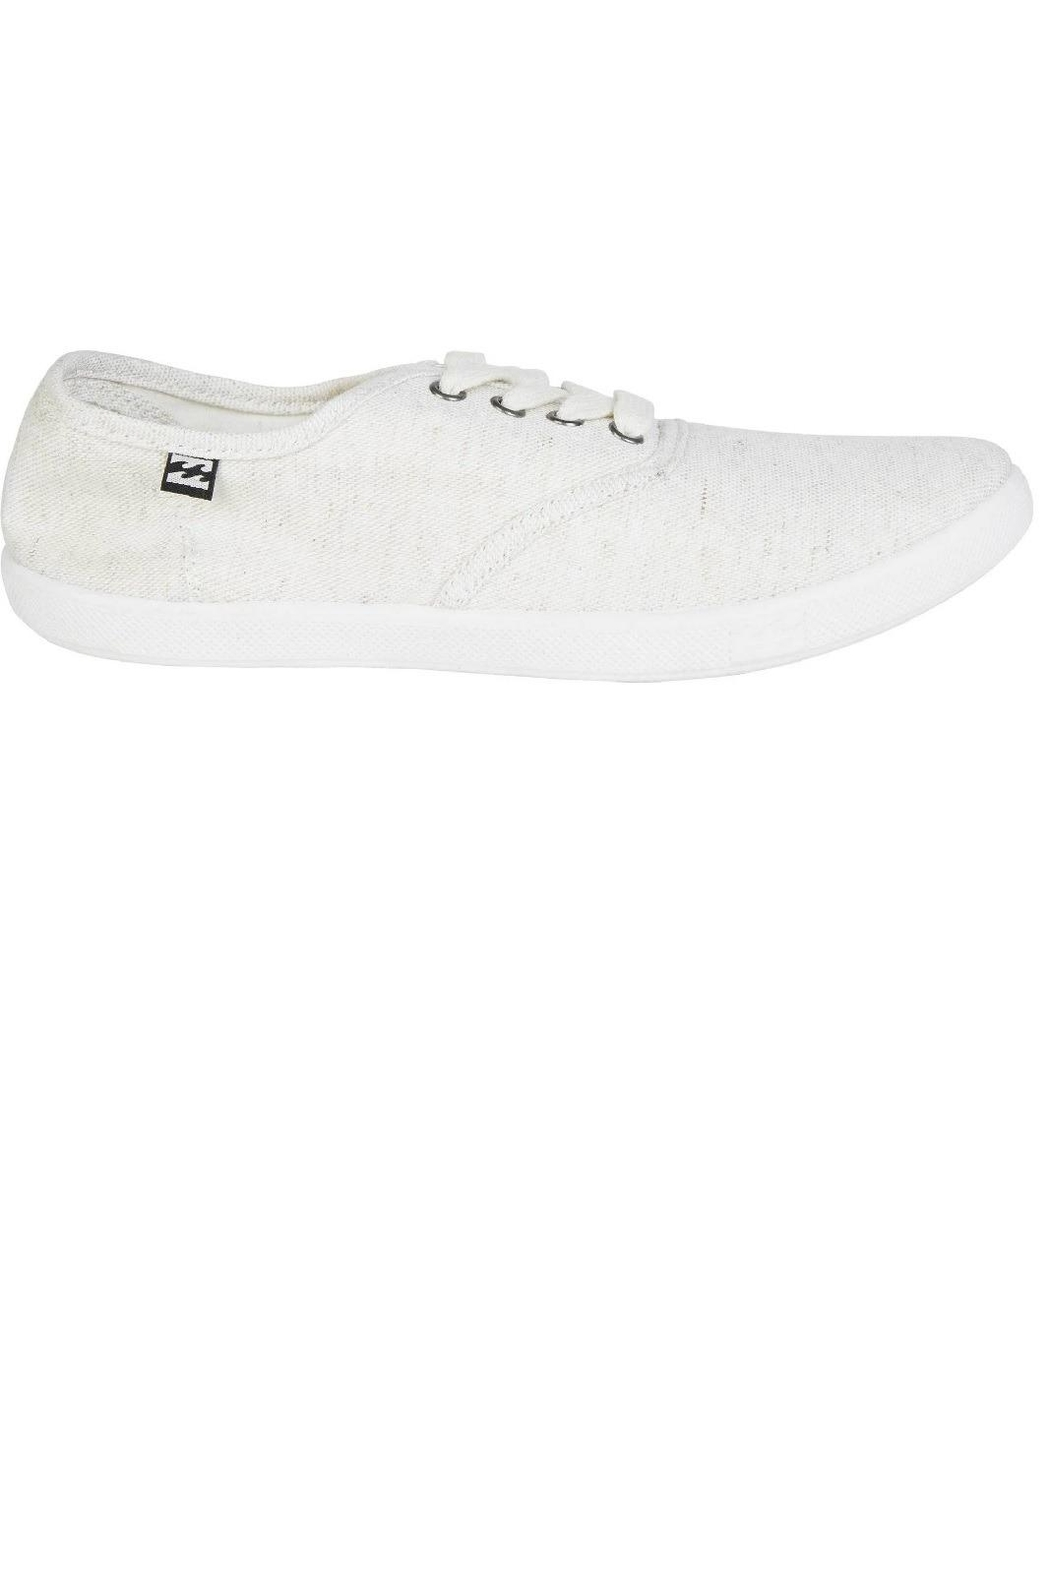 Billabong Addy Shoes - Front Full Image